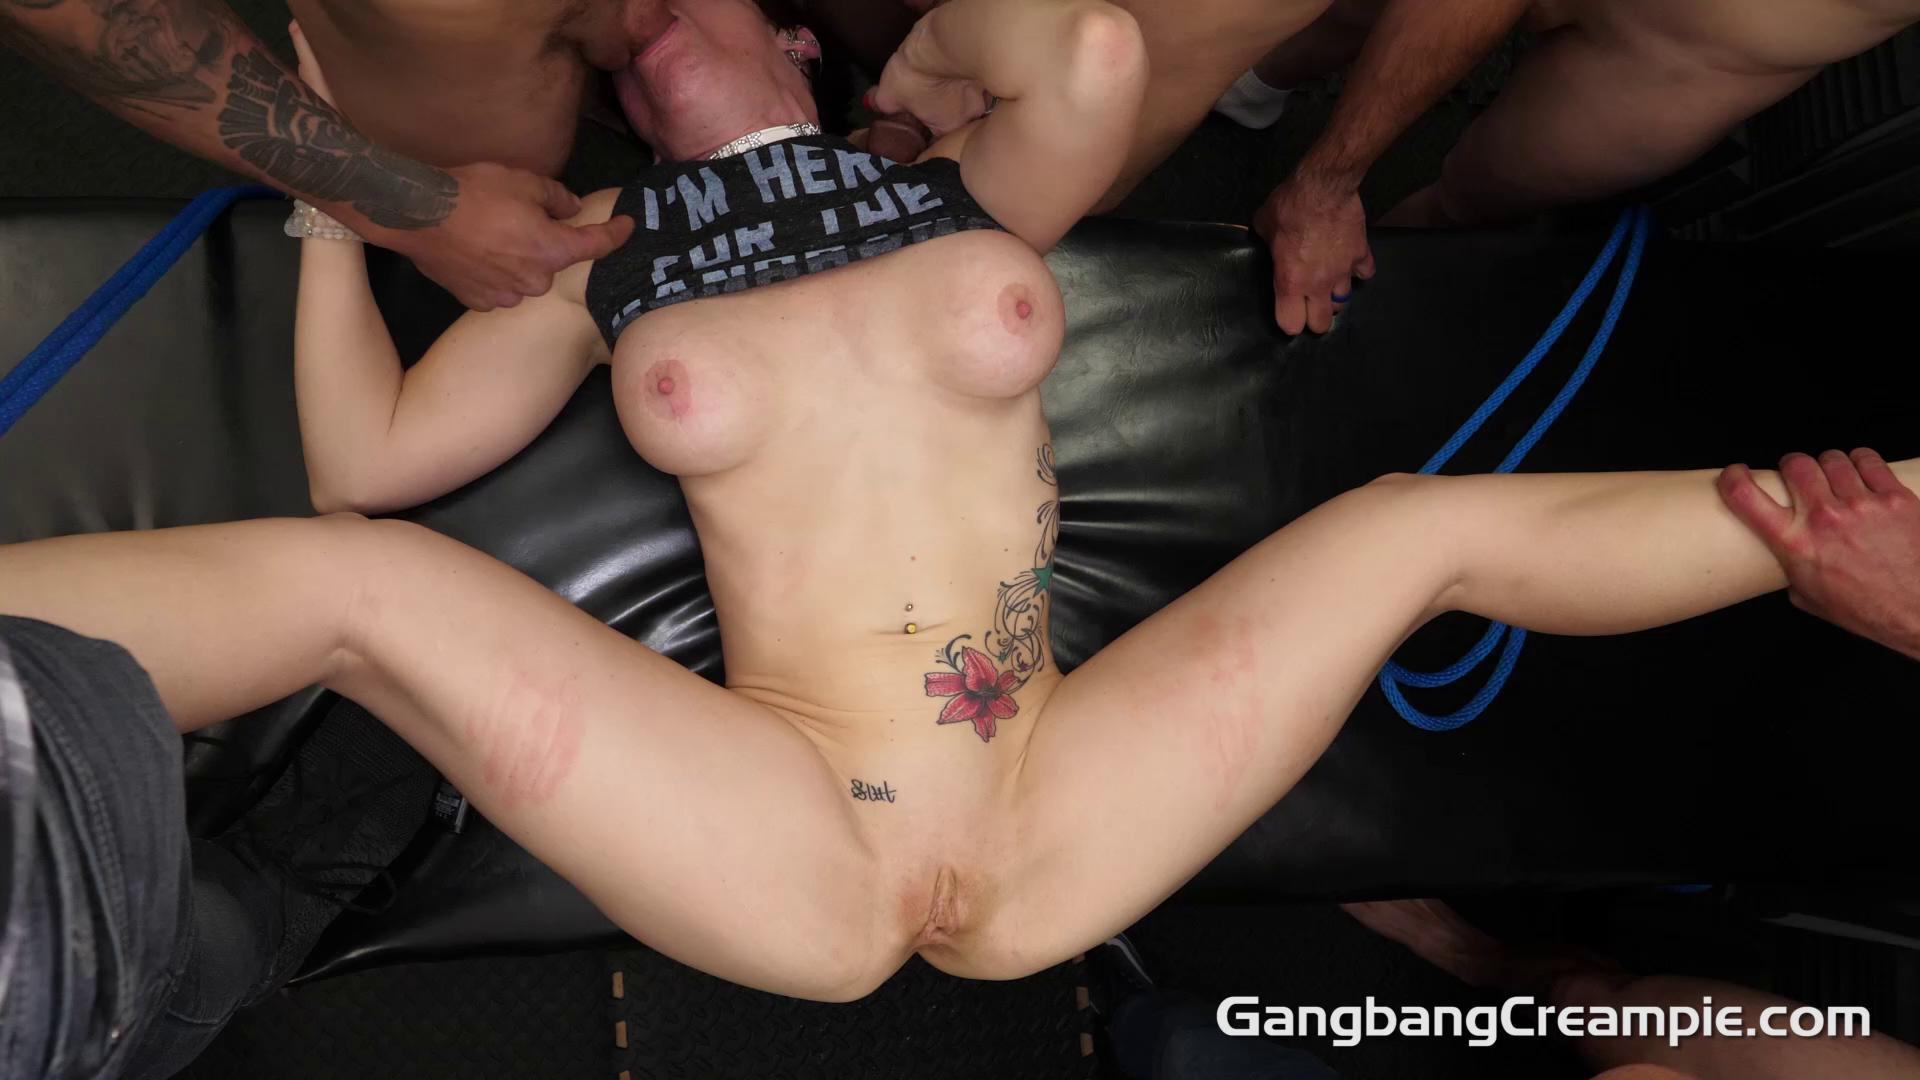 [GangbangCreampie] Molly Pleasant – G211